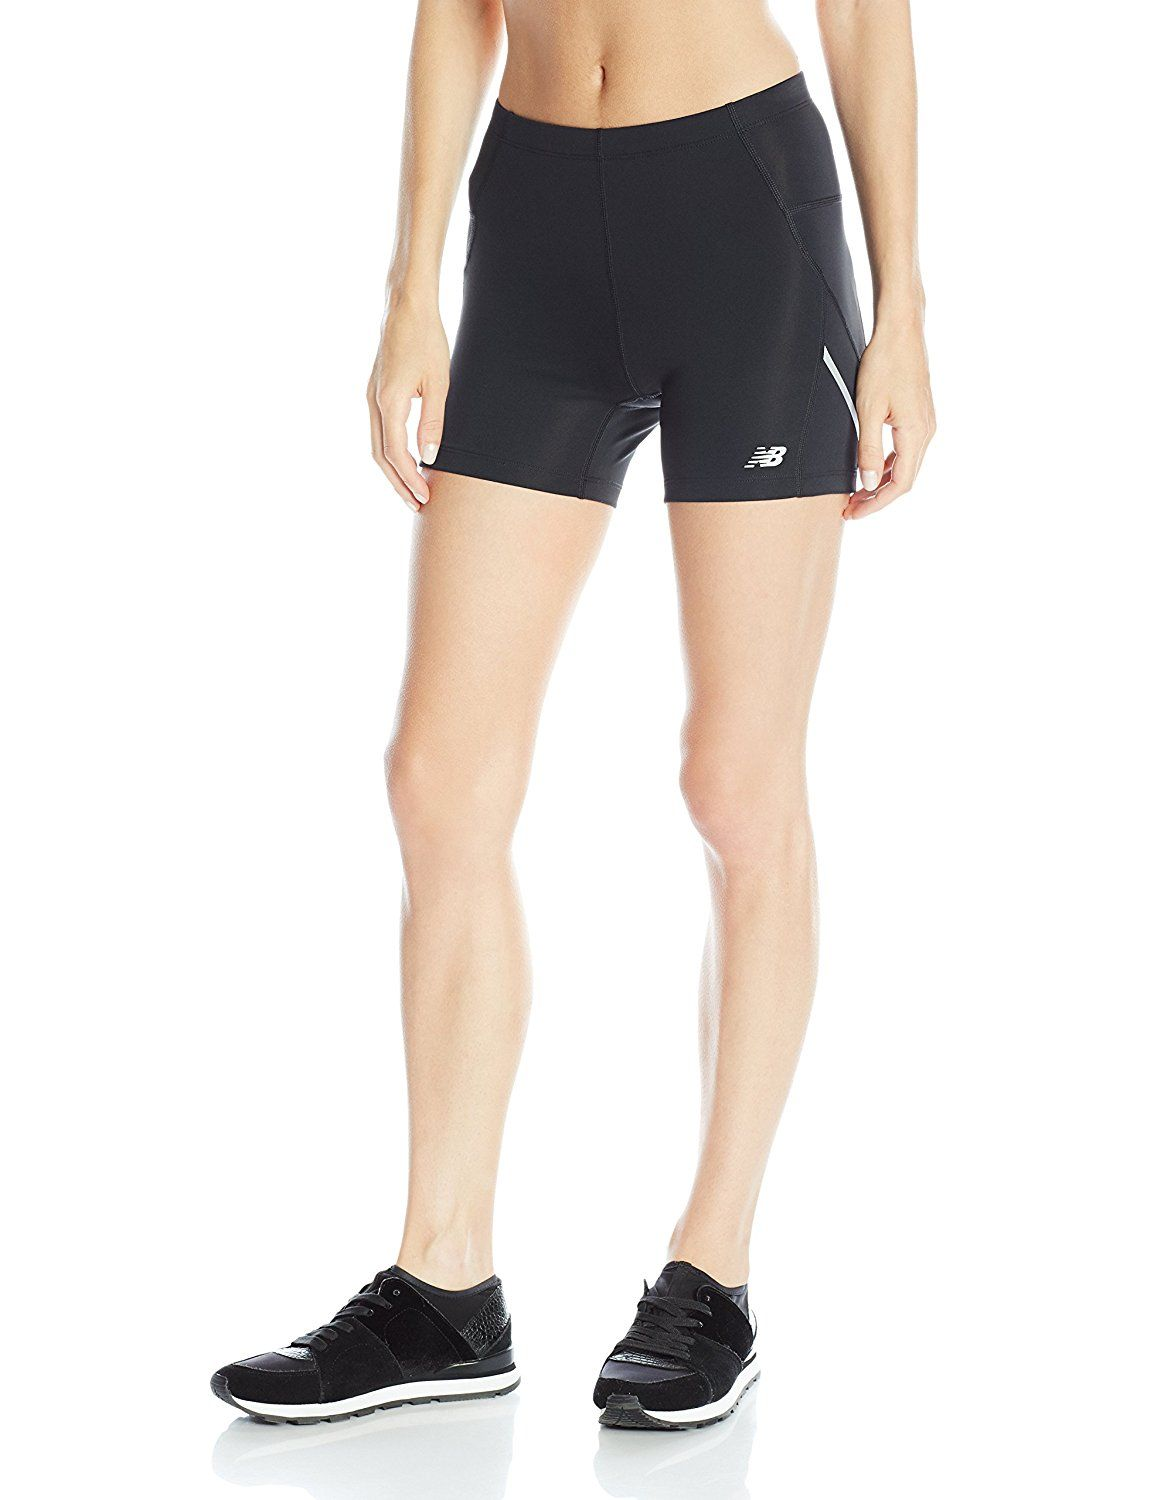 2777c8f319653 New Balance Women's Accelerate Fitted Shorts ** This is an Amazon ...